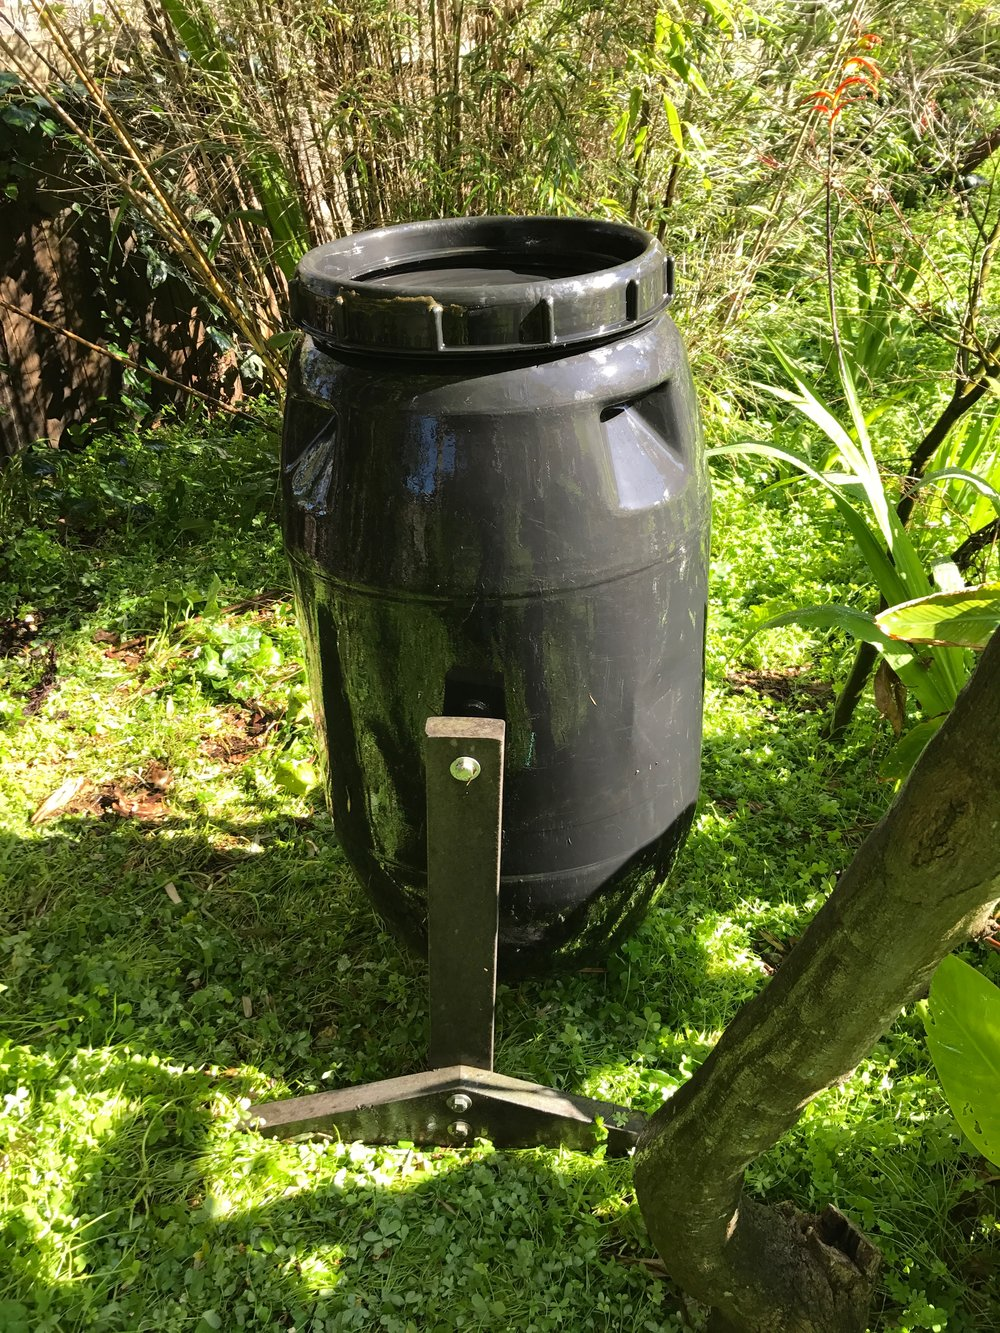 Compost bin for retting